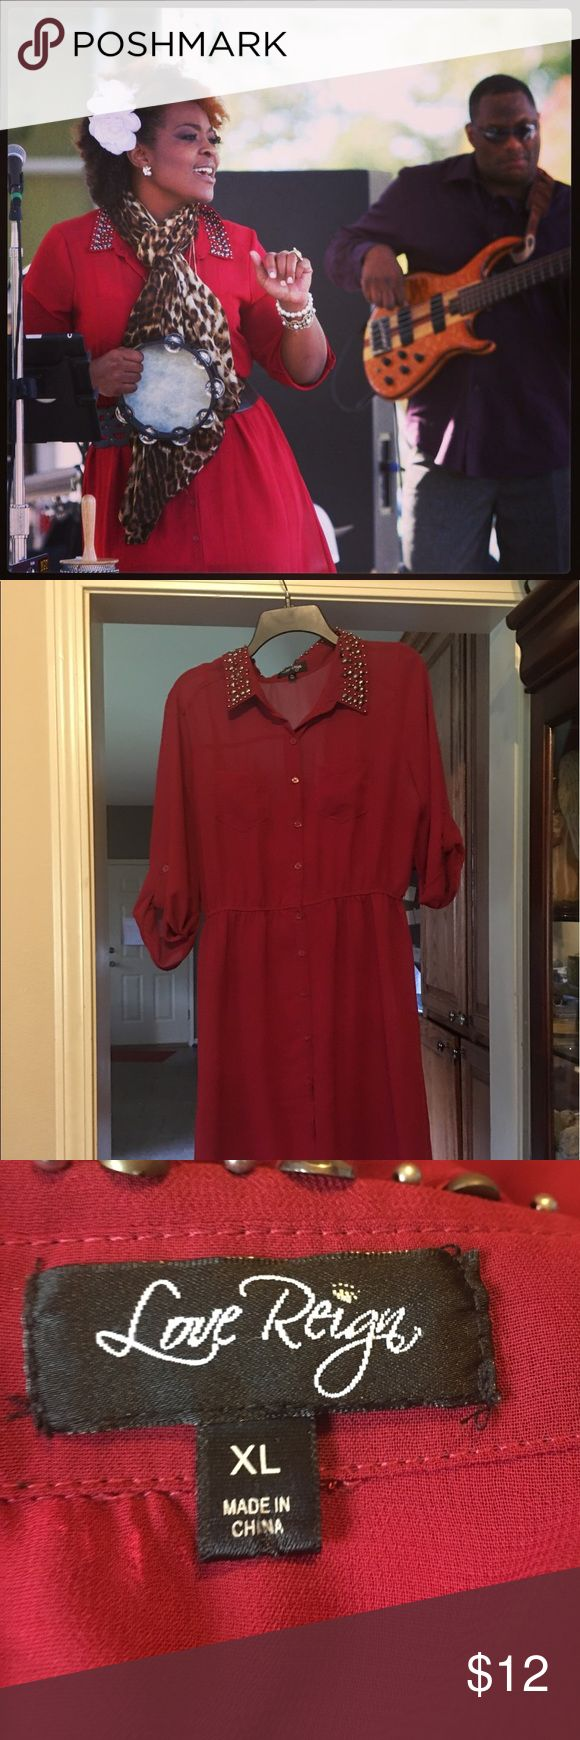 Red shirt dress with stud accent on collar High low shirt dress with studded collar. Sheer sheets over shell. Dresses High Low